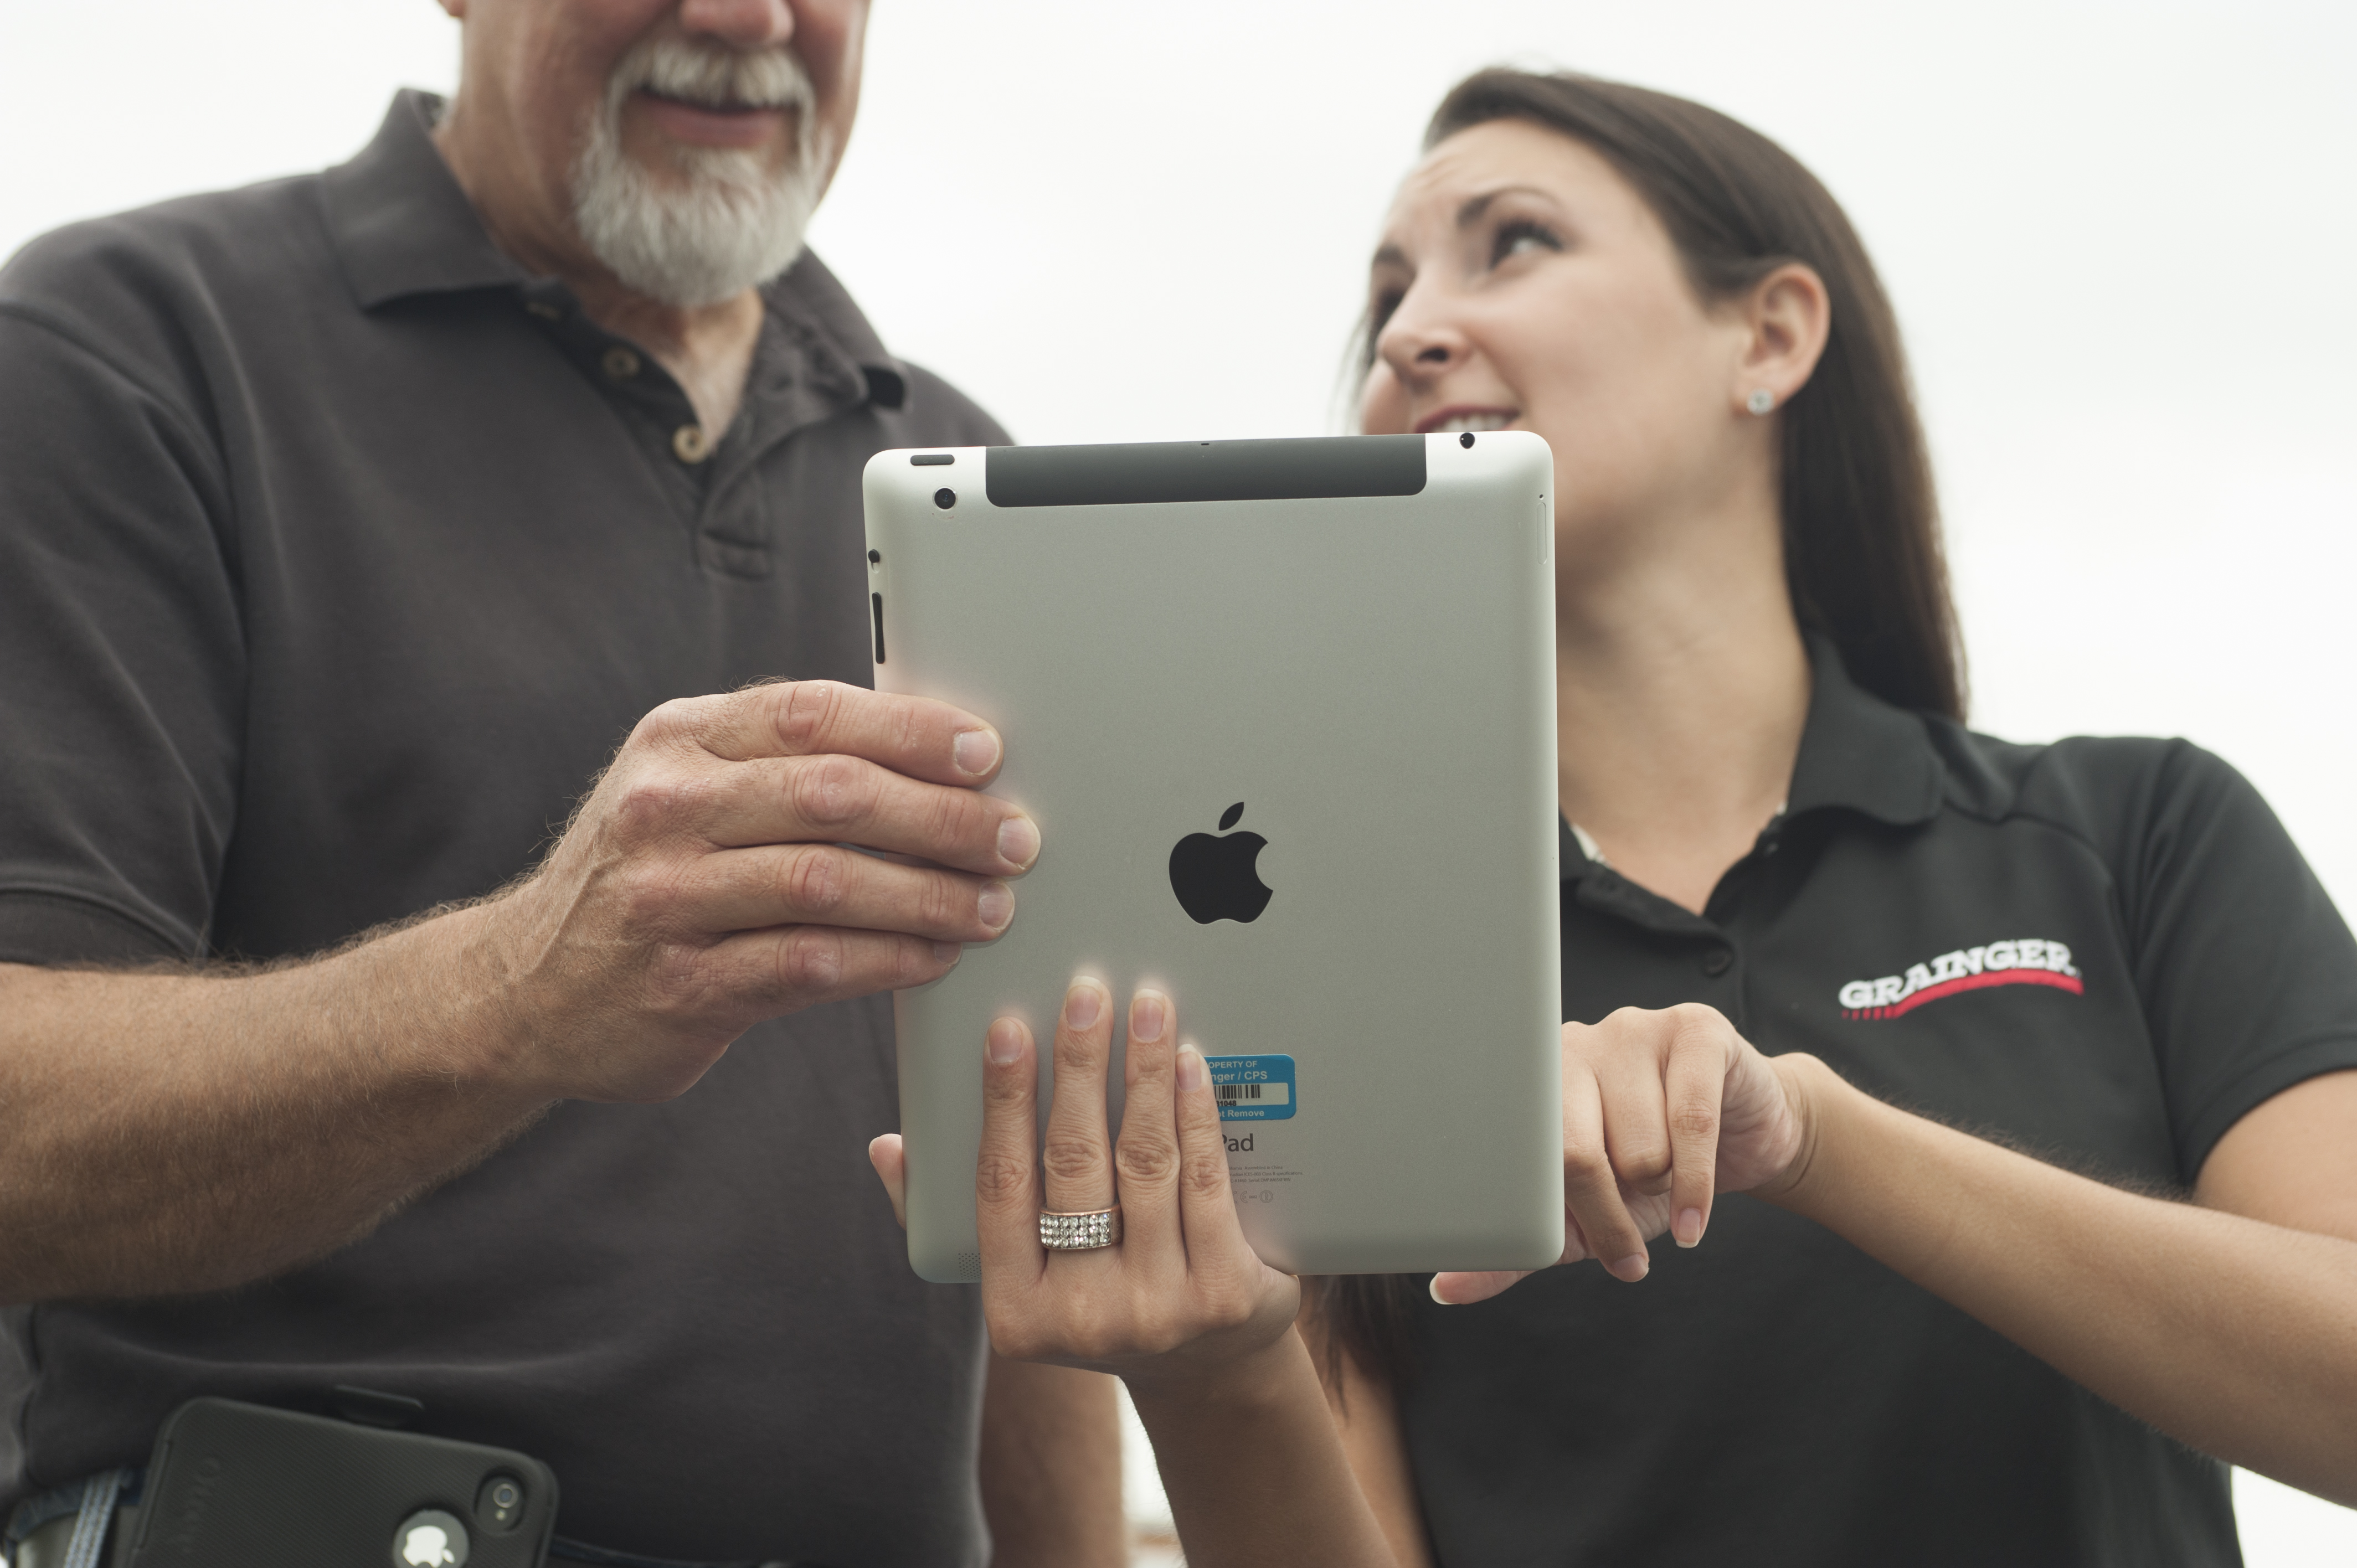 Grainger's iPad app allows customers to visually browse through thousands of products in seconds, with access to technical product specifications, real-time availability, easy checkout and more.